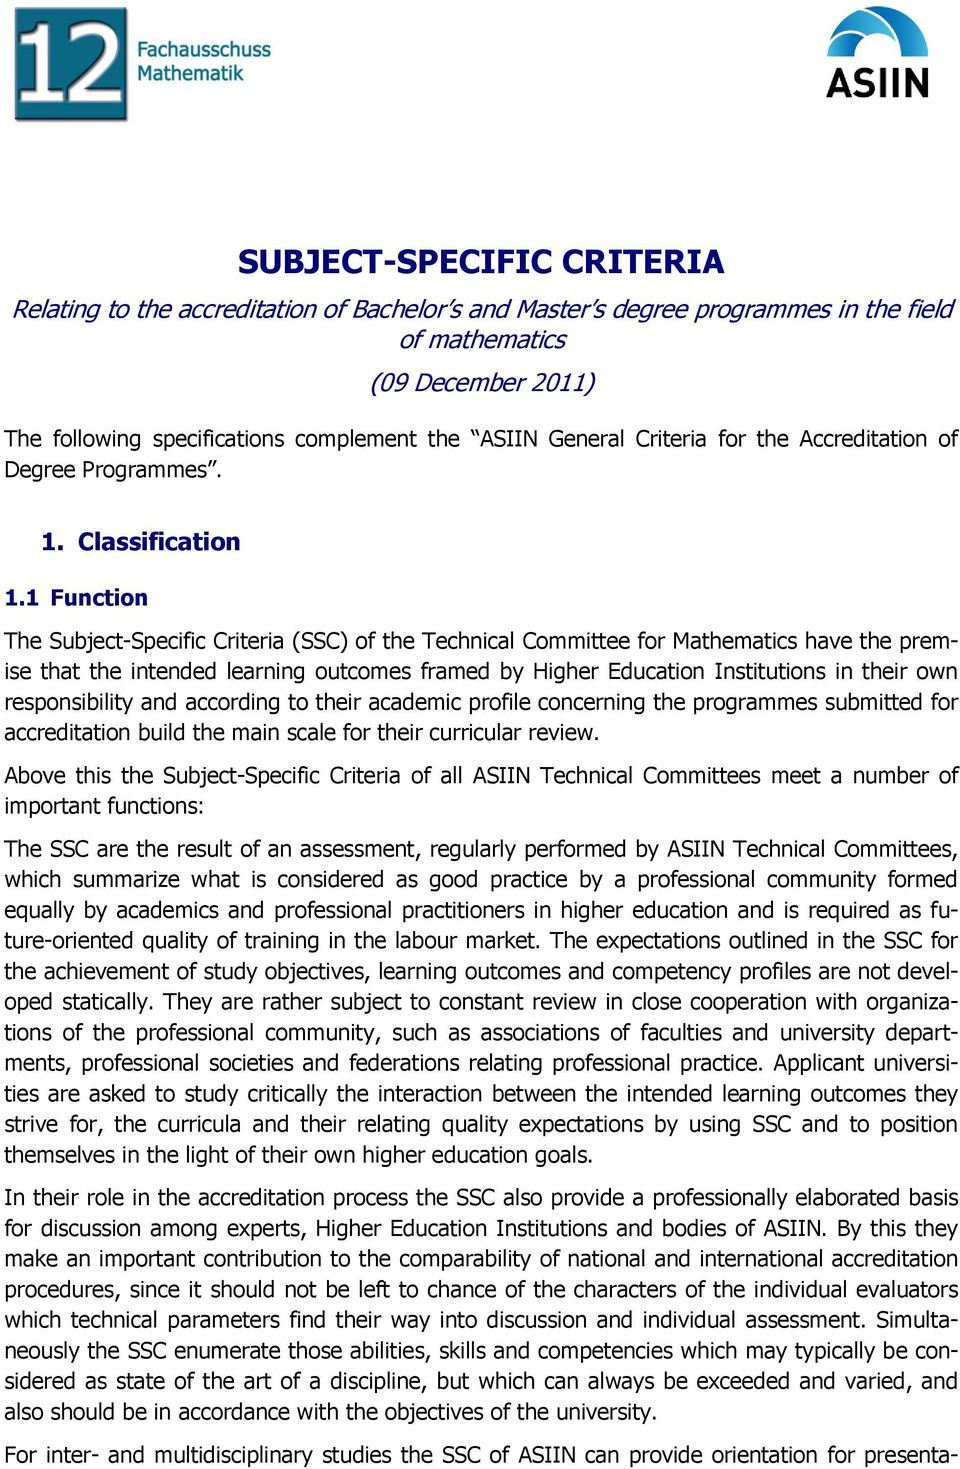 1 Function The Subject-Specific Criteria (SSC) of the Technical Committee for Mathematics have the premise that the intended learning outcomes framed by Higher Education Institutions in their own